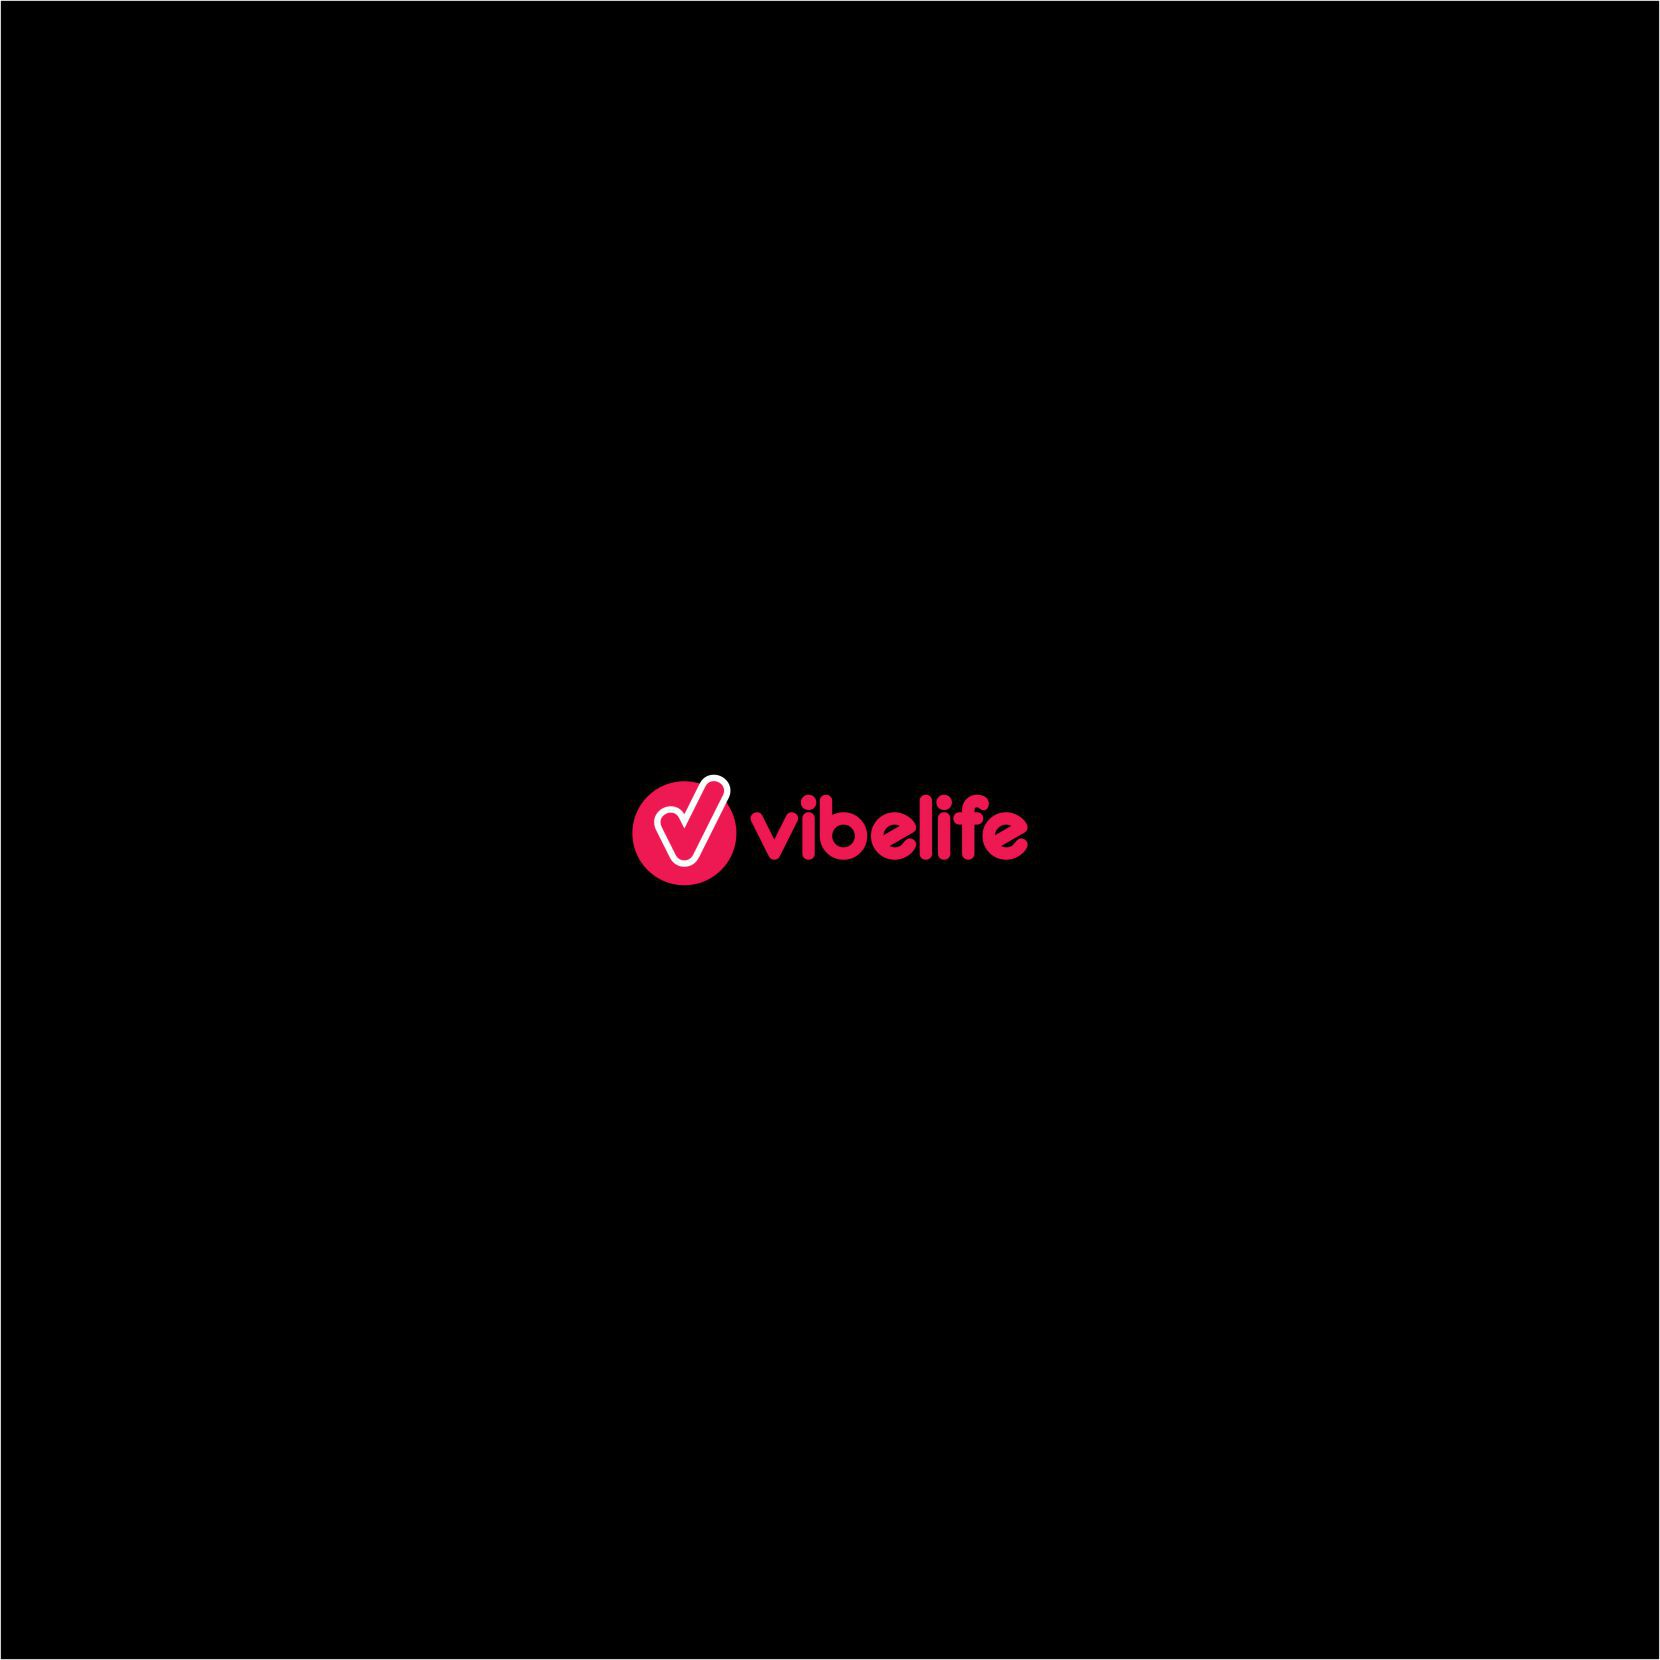 A revision to the vibelife logo that you designed